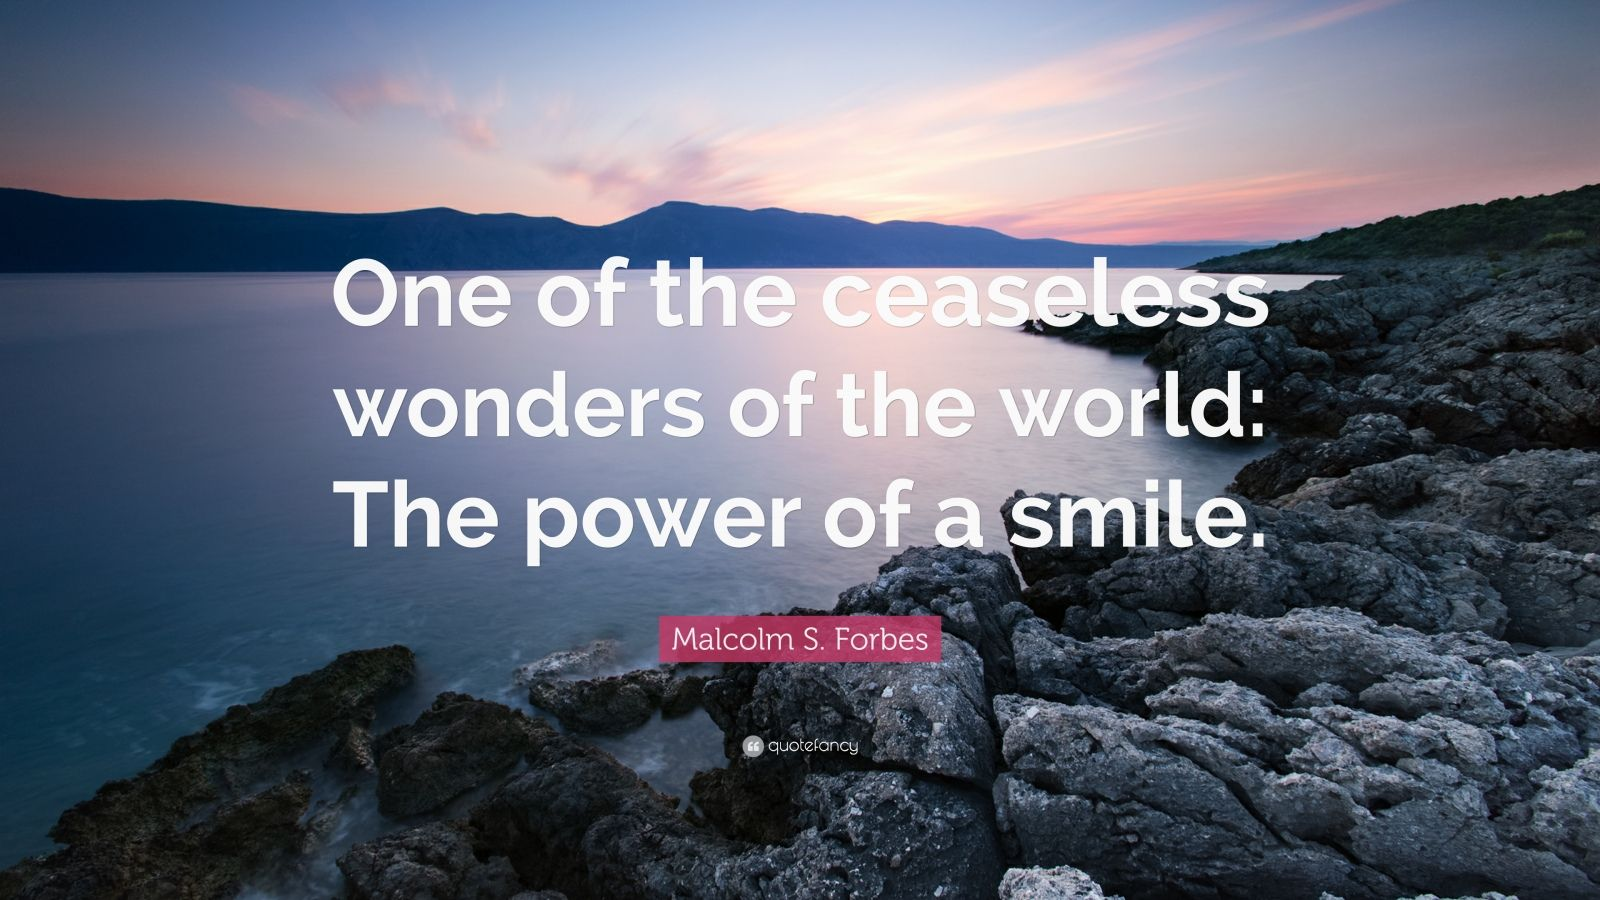 """Malcolm S. Forbes Quote: """"One of the ceaseless wonders of the world: The power of a smile."""""""